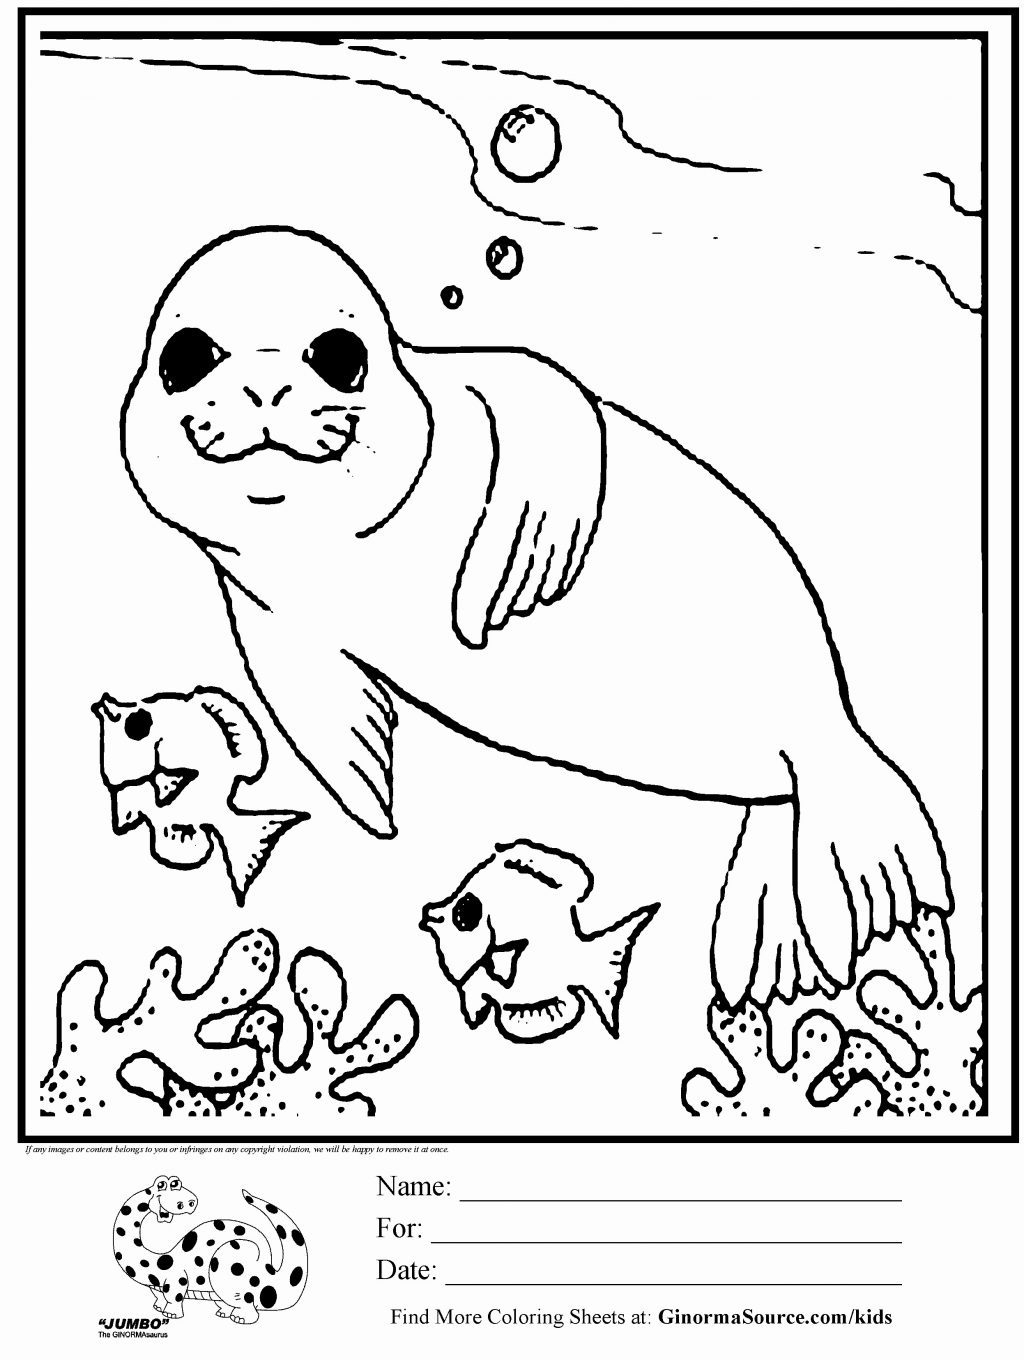 Sea Monster Coloring Pages Coloring Books Astonishing Sea Creatures Coloring Pages Deep Comfy